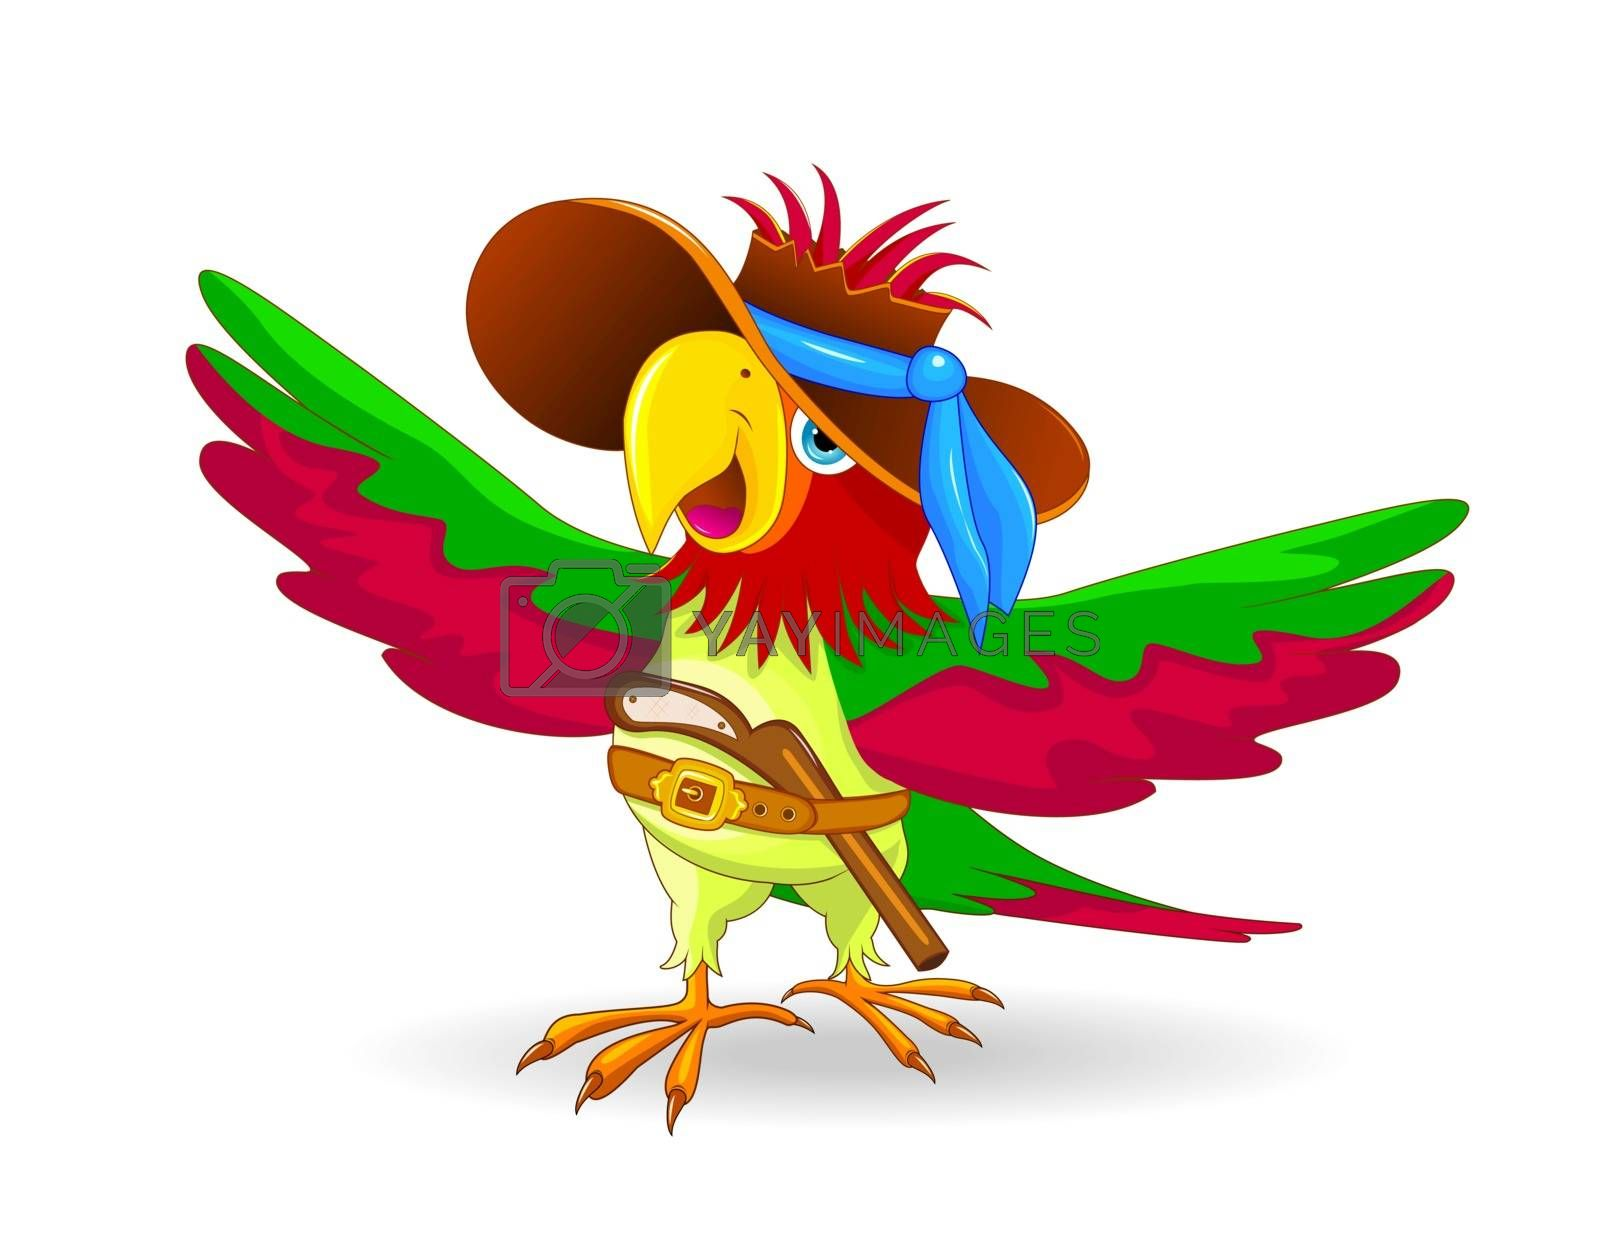 Cartoon parrot pirate with hat on head on white background. Parrot in a hat and with a gun behind his belt.